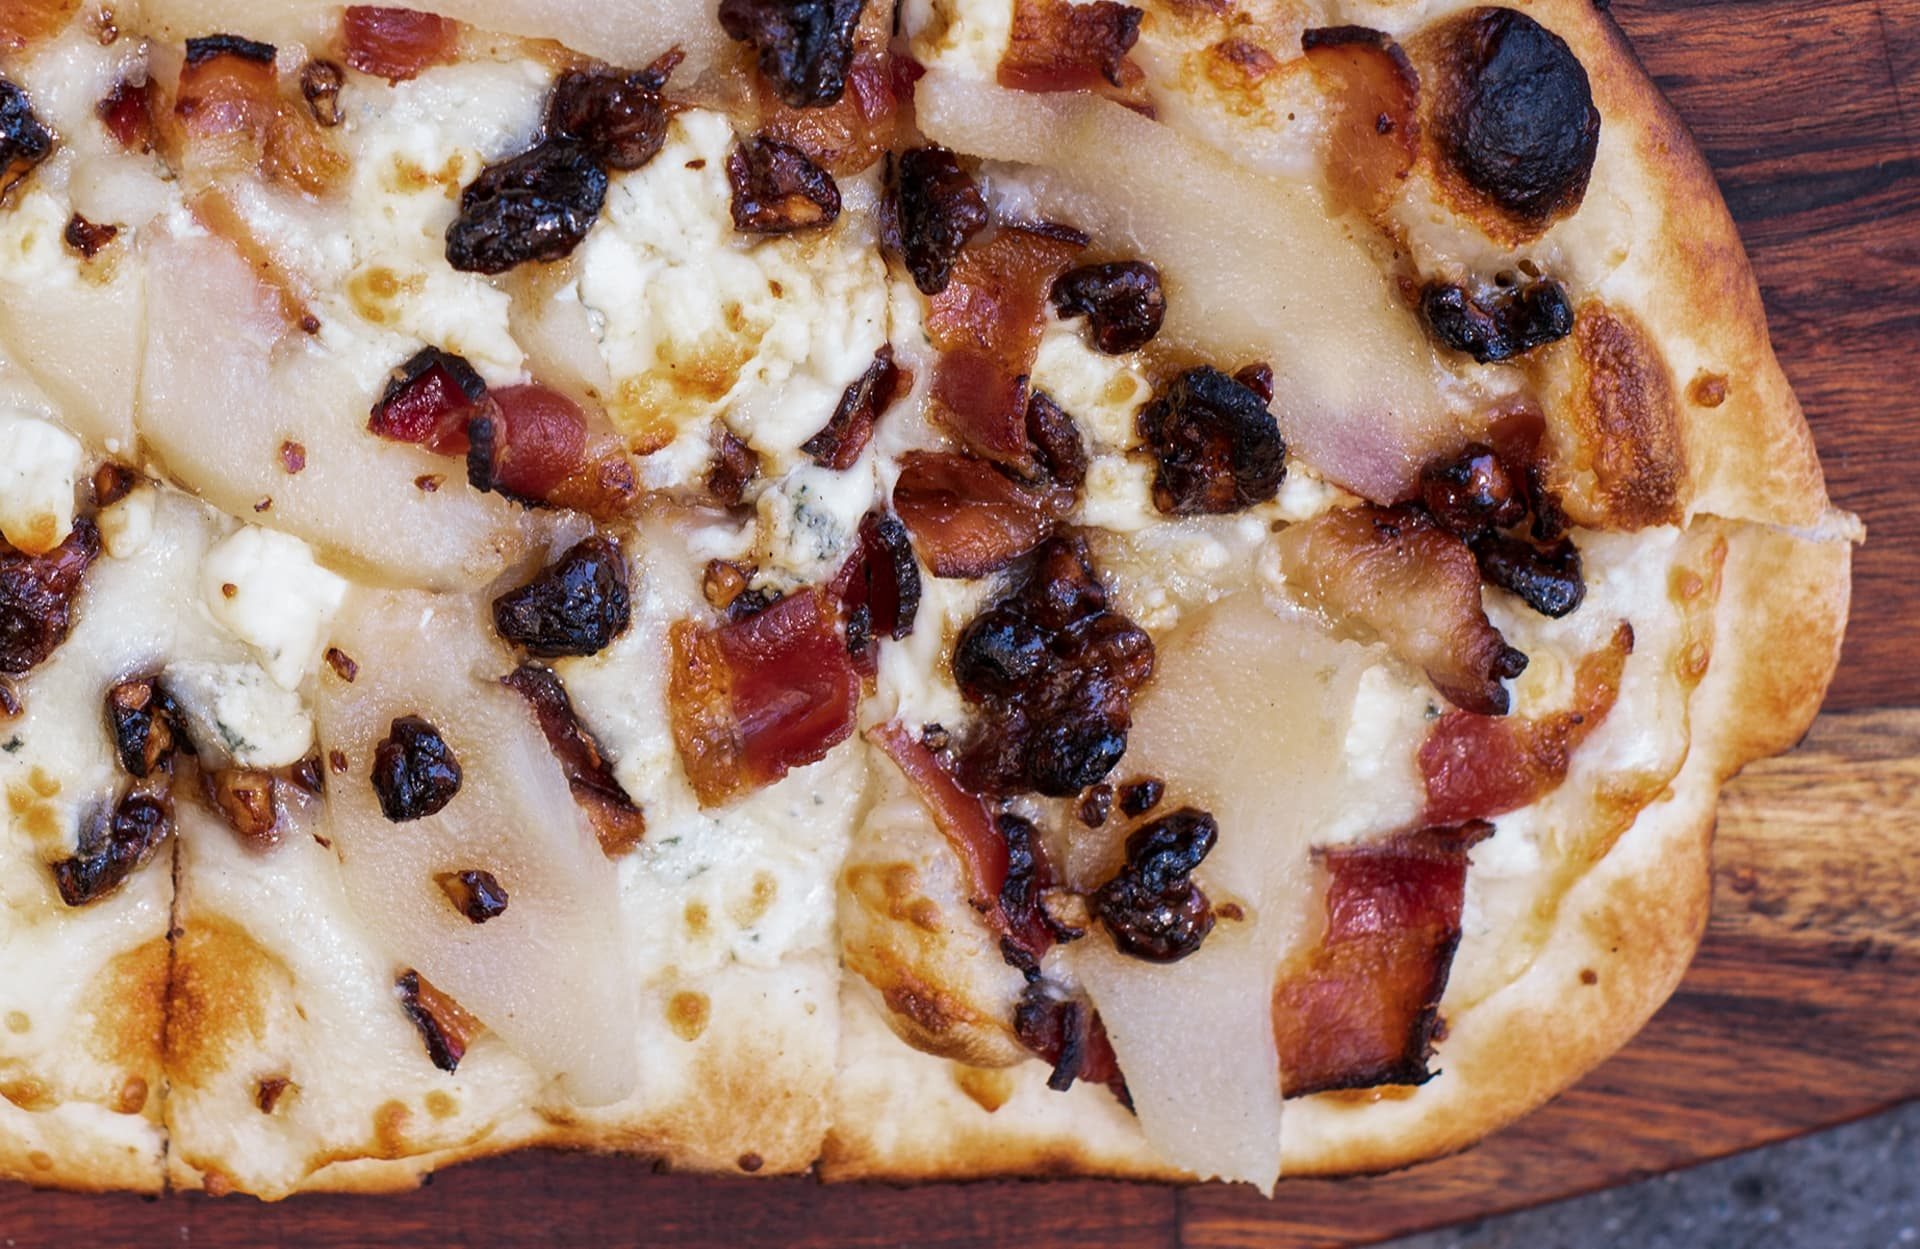 PEAR GORGONZOLA AND BACON FLATBREAD